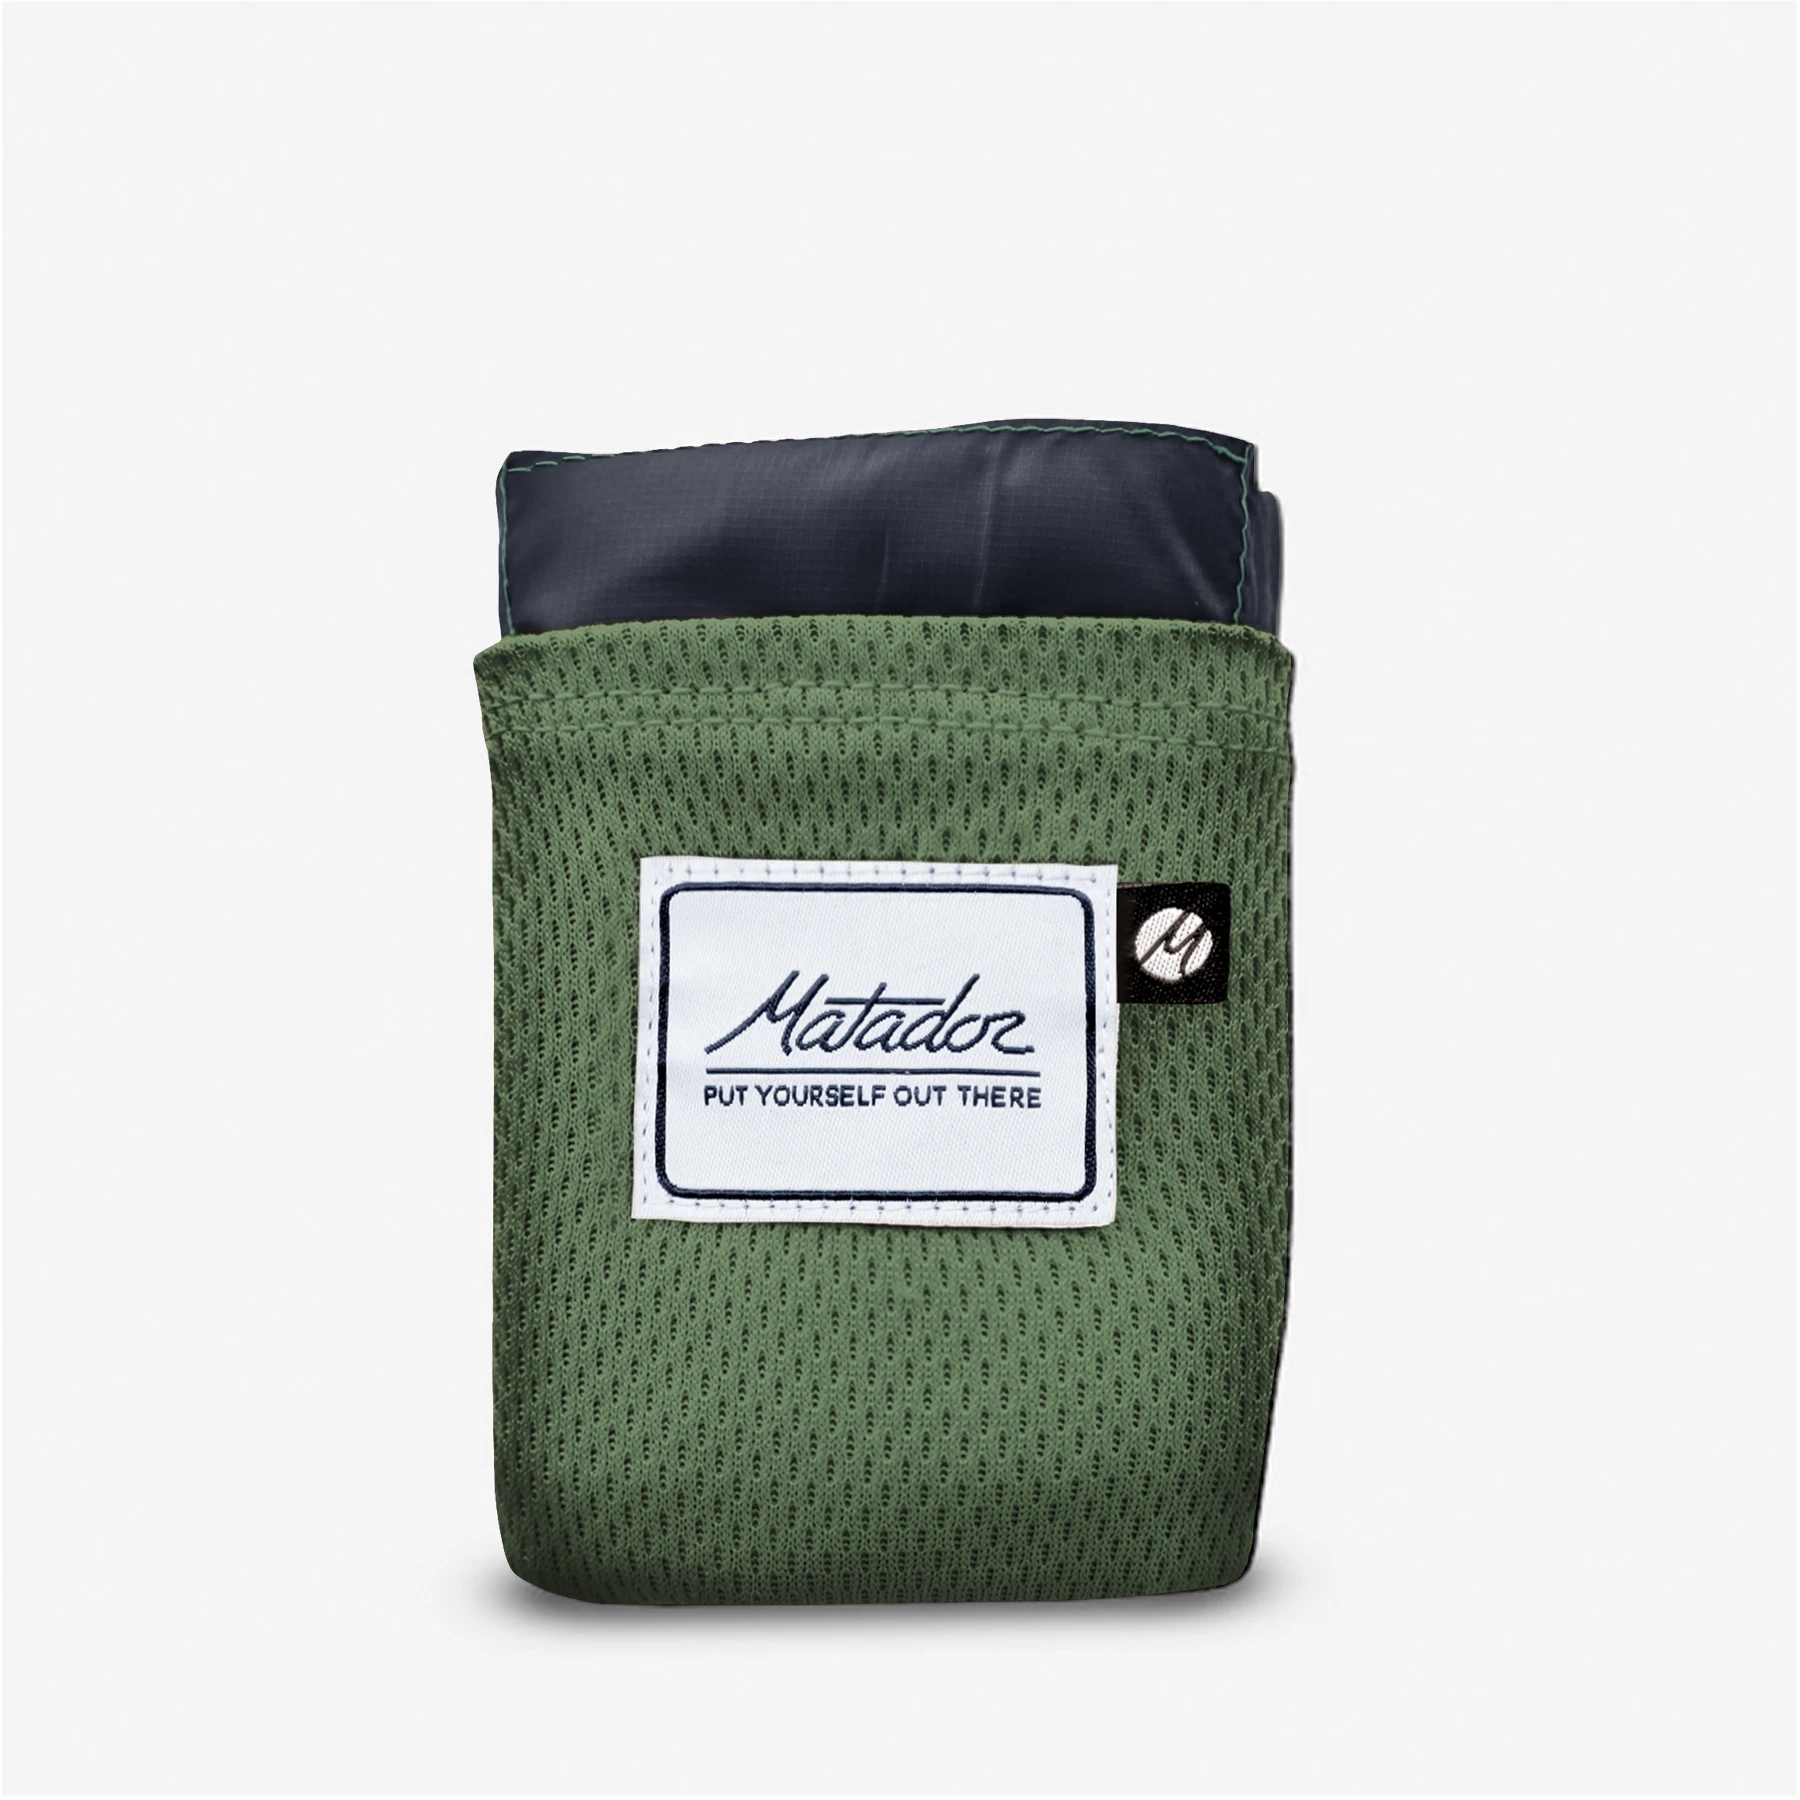 Matador Pocket Blanket 2.0 - Green